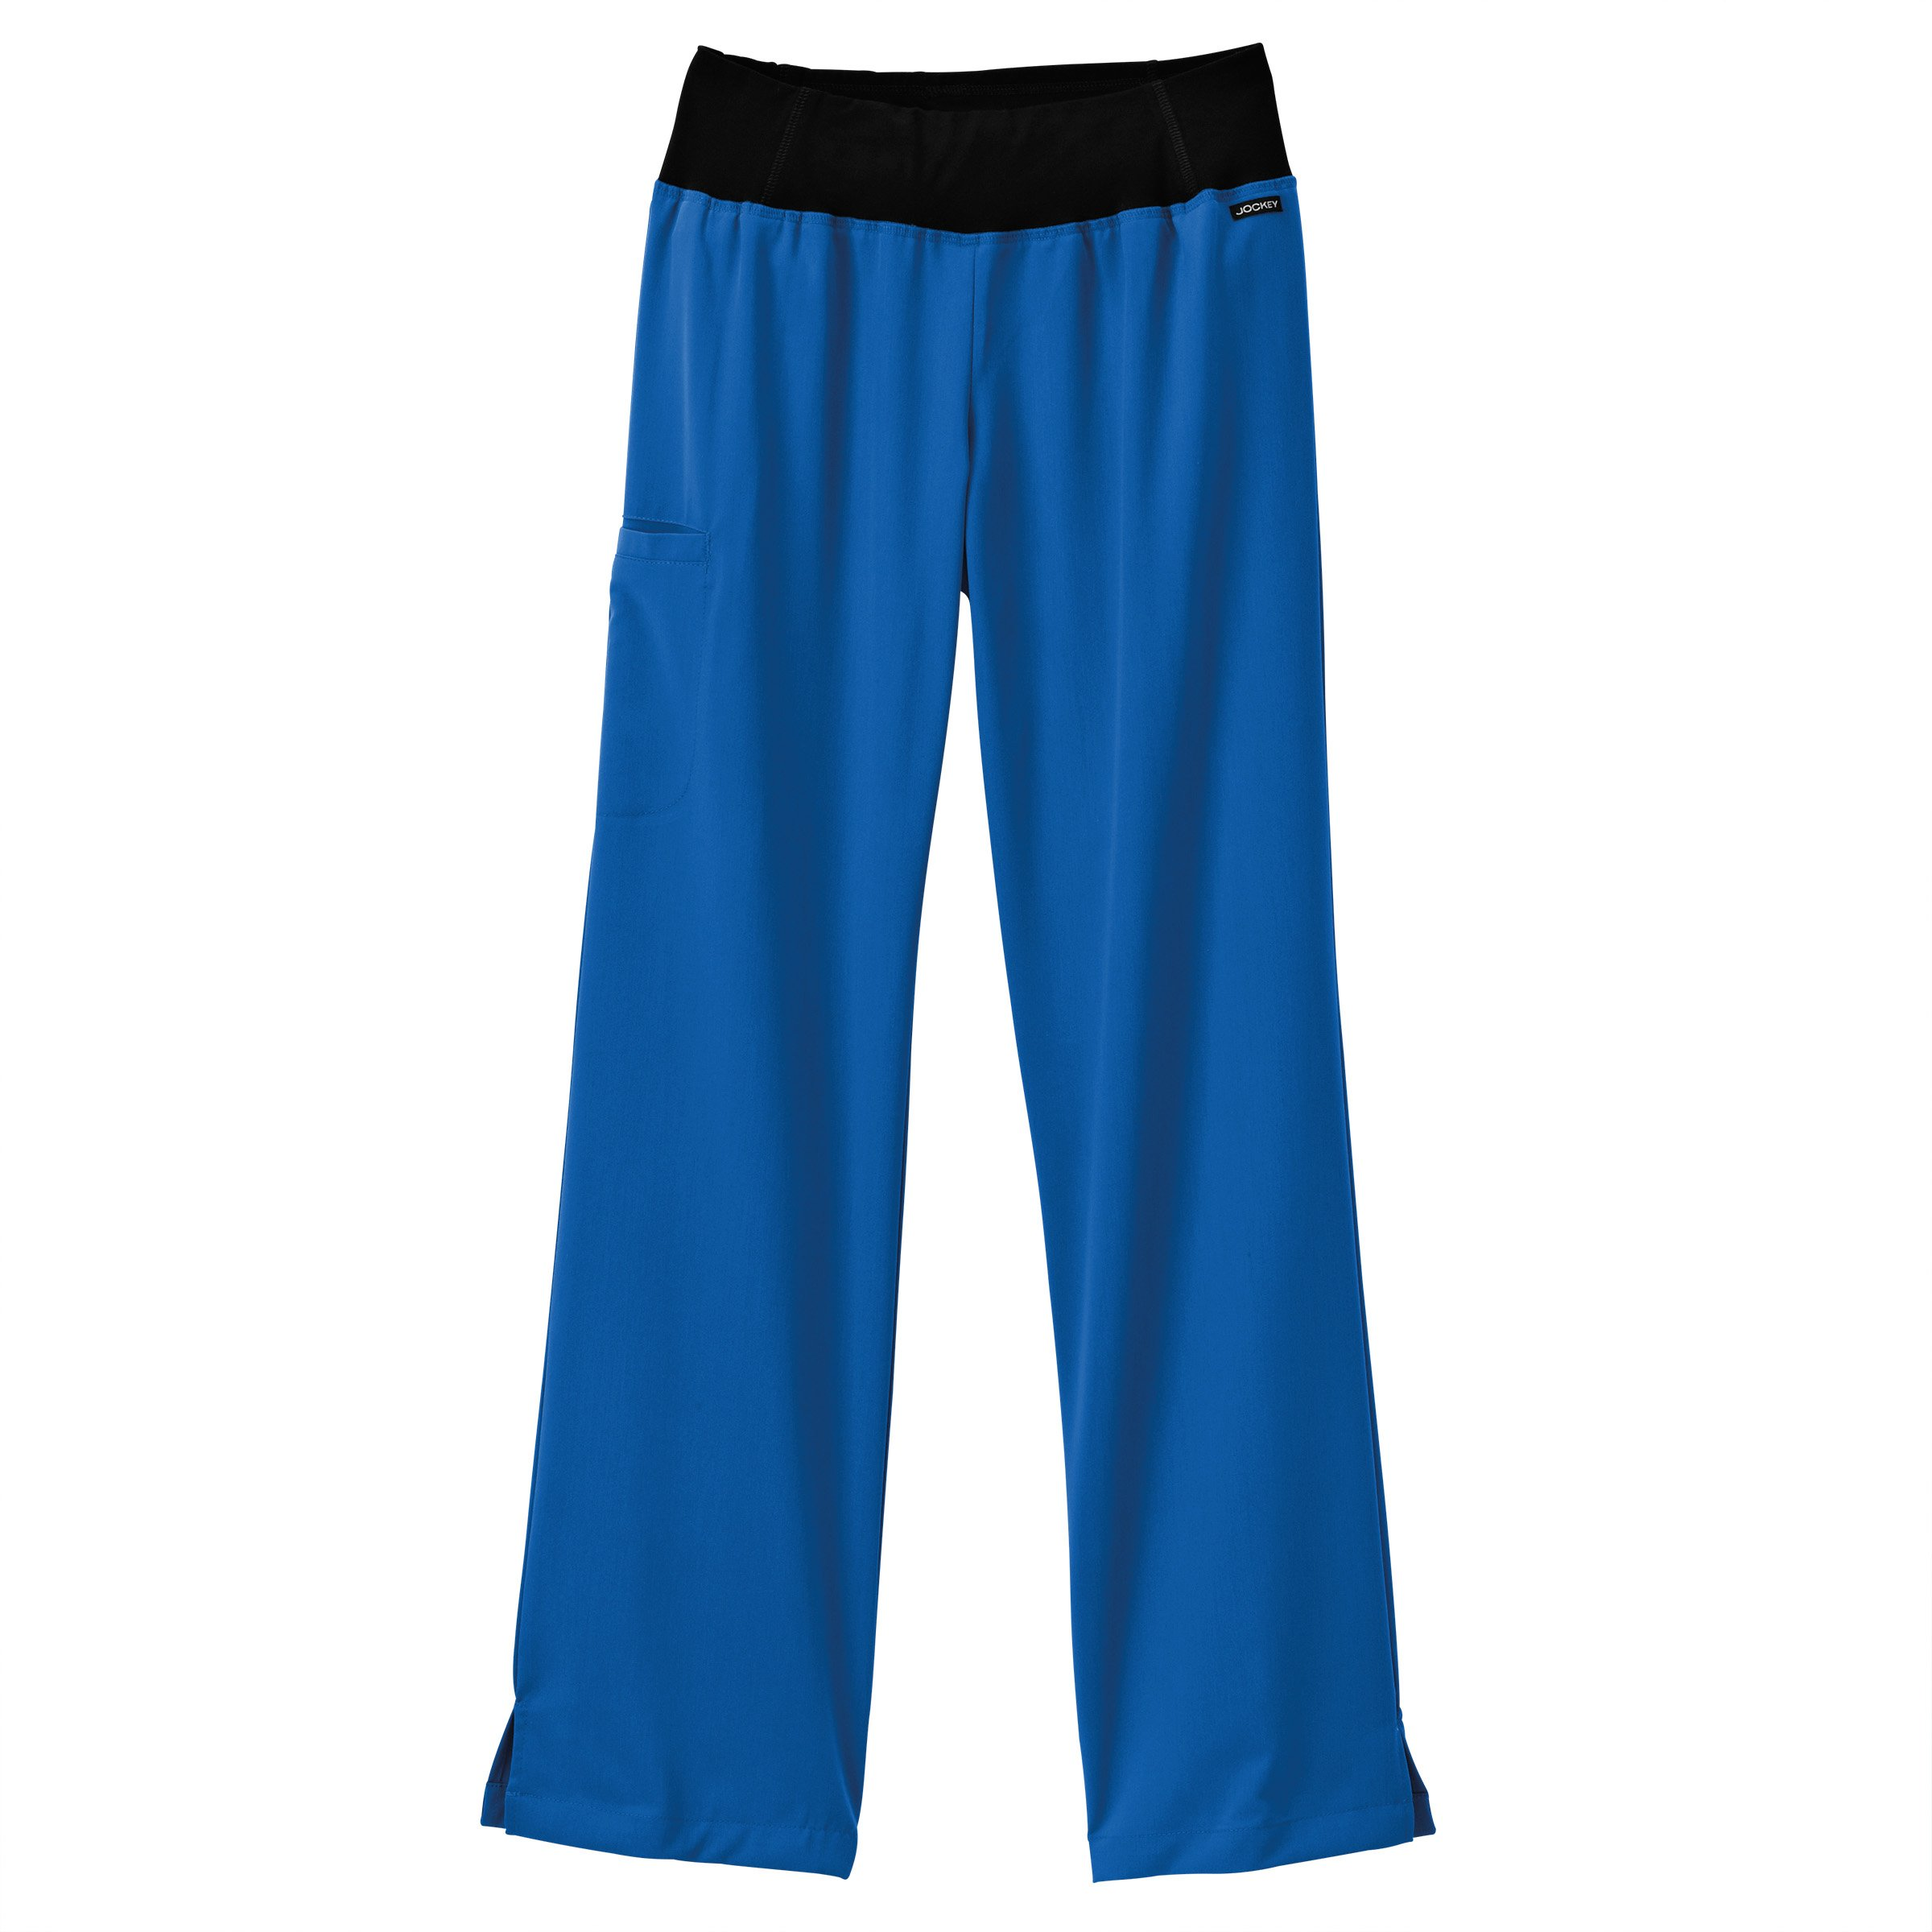 Modern Fit Collection by Jockey Women's Yoga Scrub Pant X-Large Petite Royal